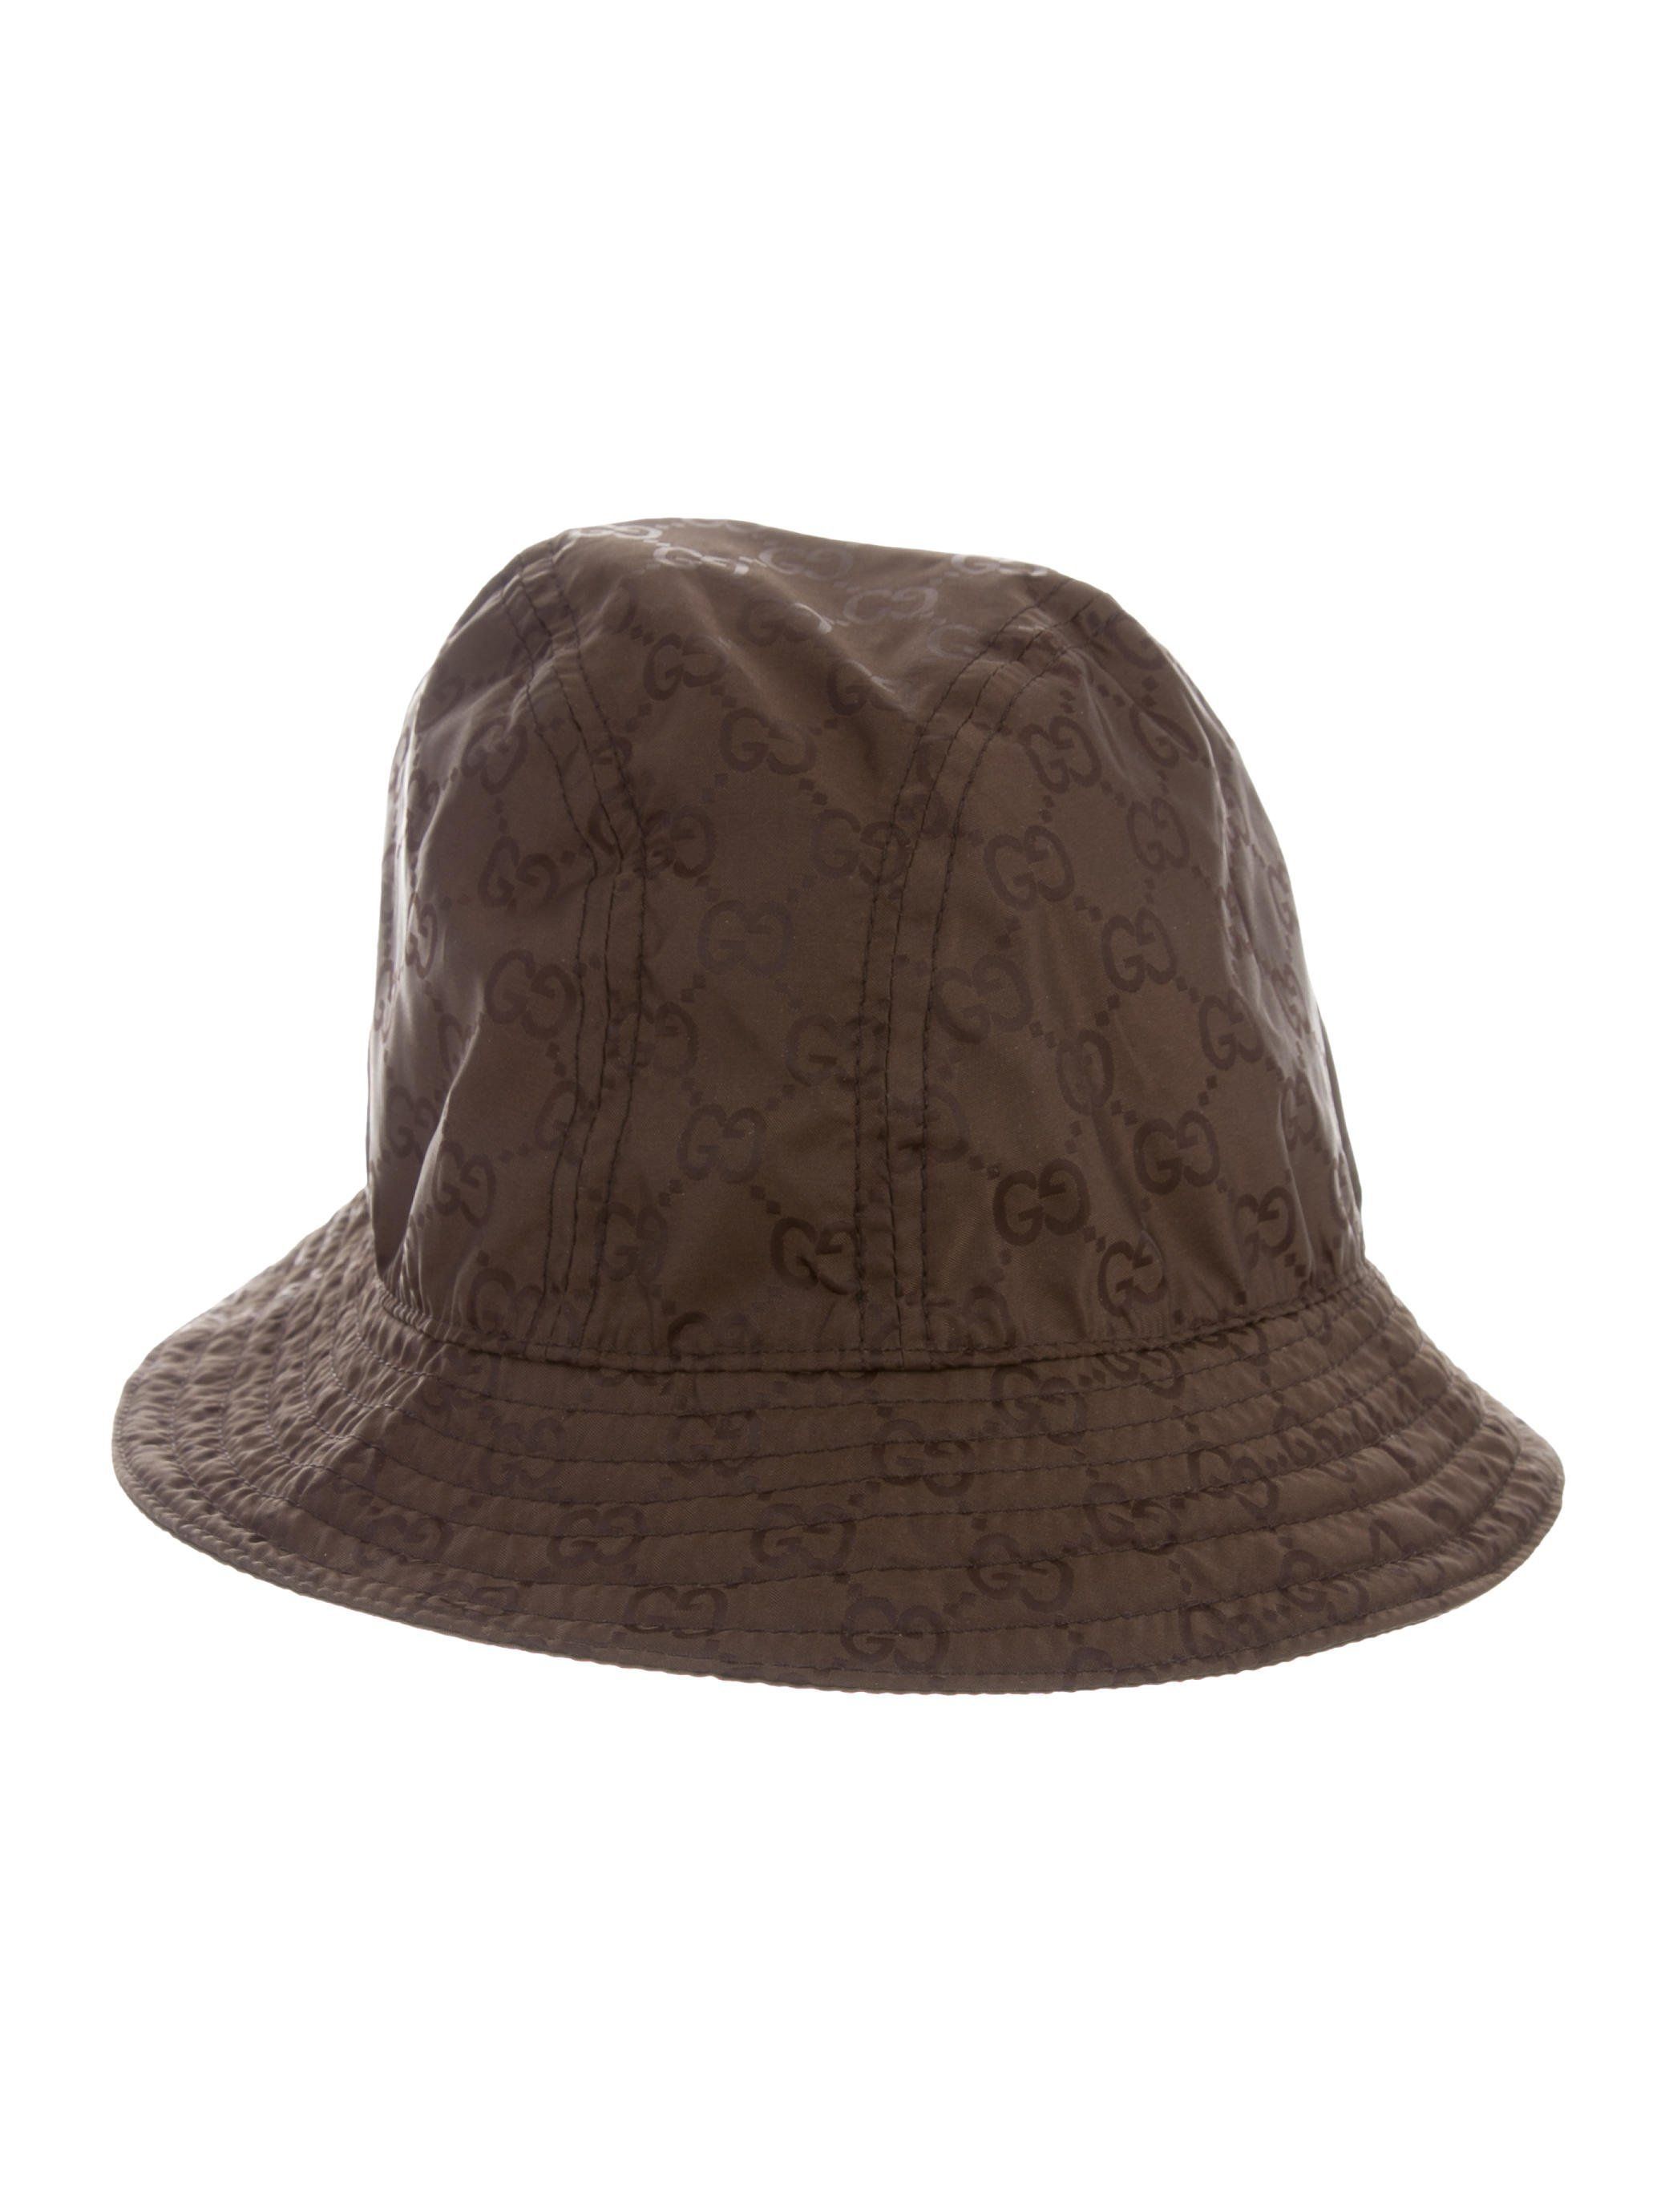 fce32438f1e Men s brown Gucci nylon bucket hat with GG pattern throughout. Designer  size XL.